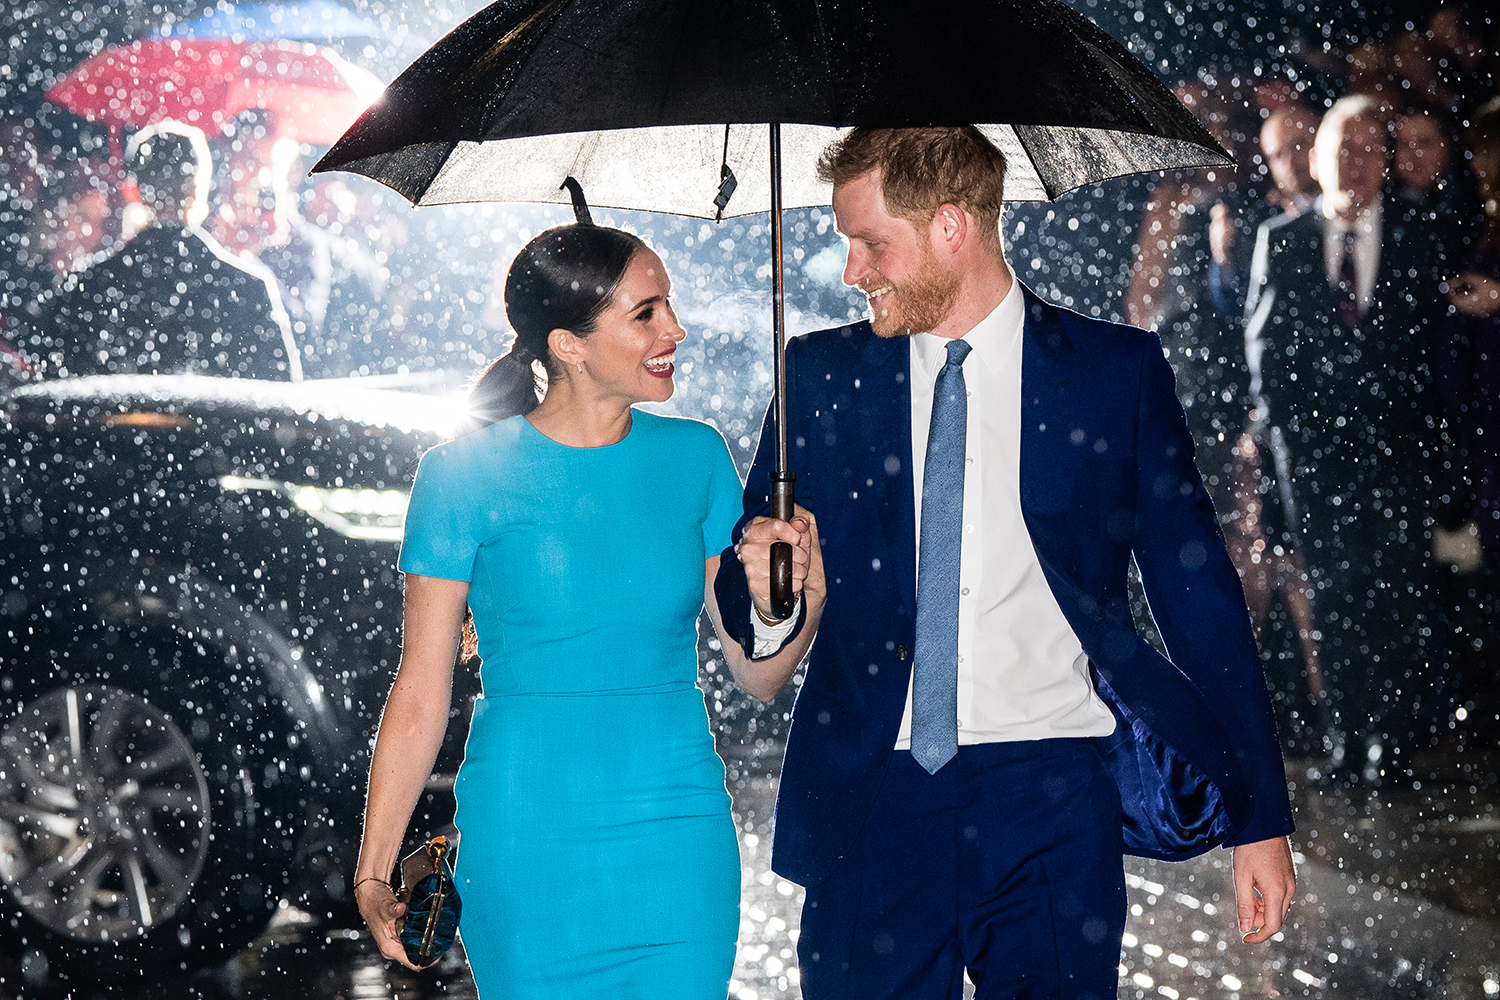 The looks of love. Prince Harry, Duke of Sussex, and Meghan, Duchess of Sussex, attend the Endeavour Fund Awards at Mansion House in London on March 5. Samir Hussein/WireImage